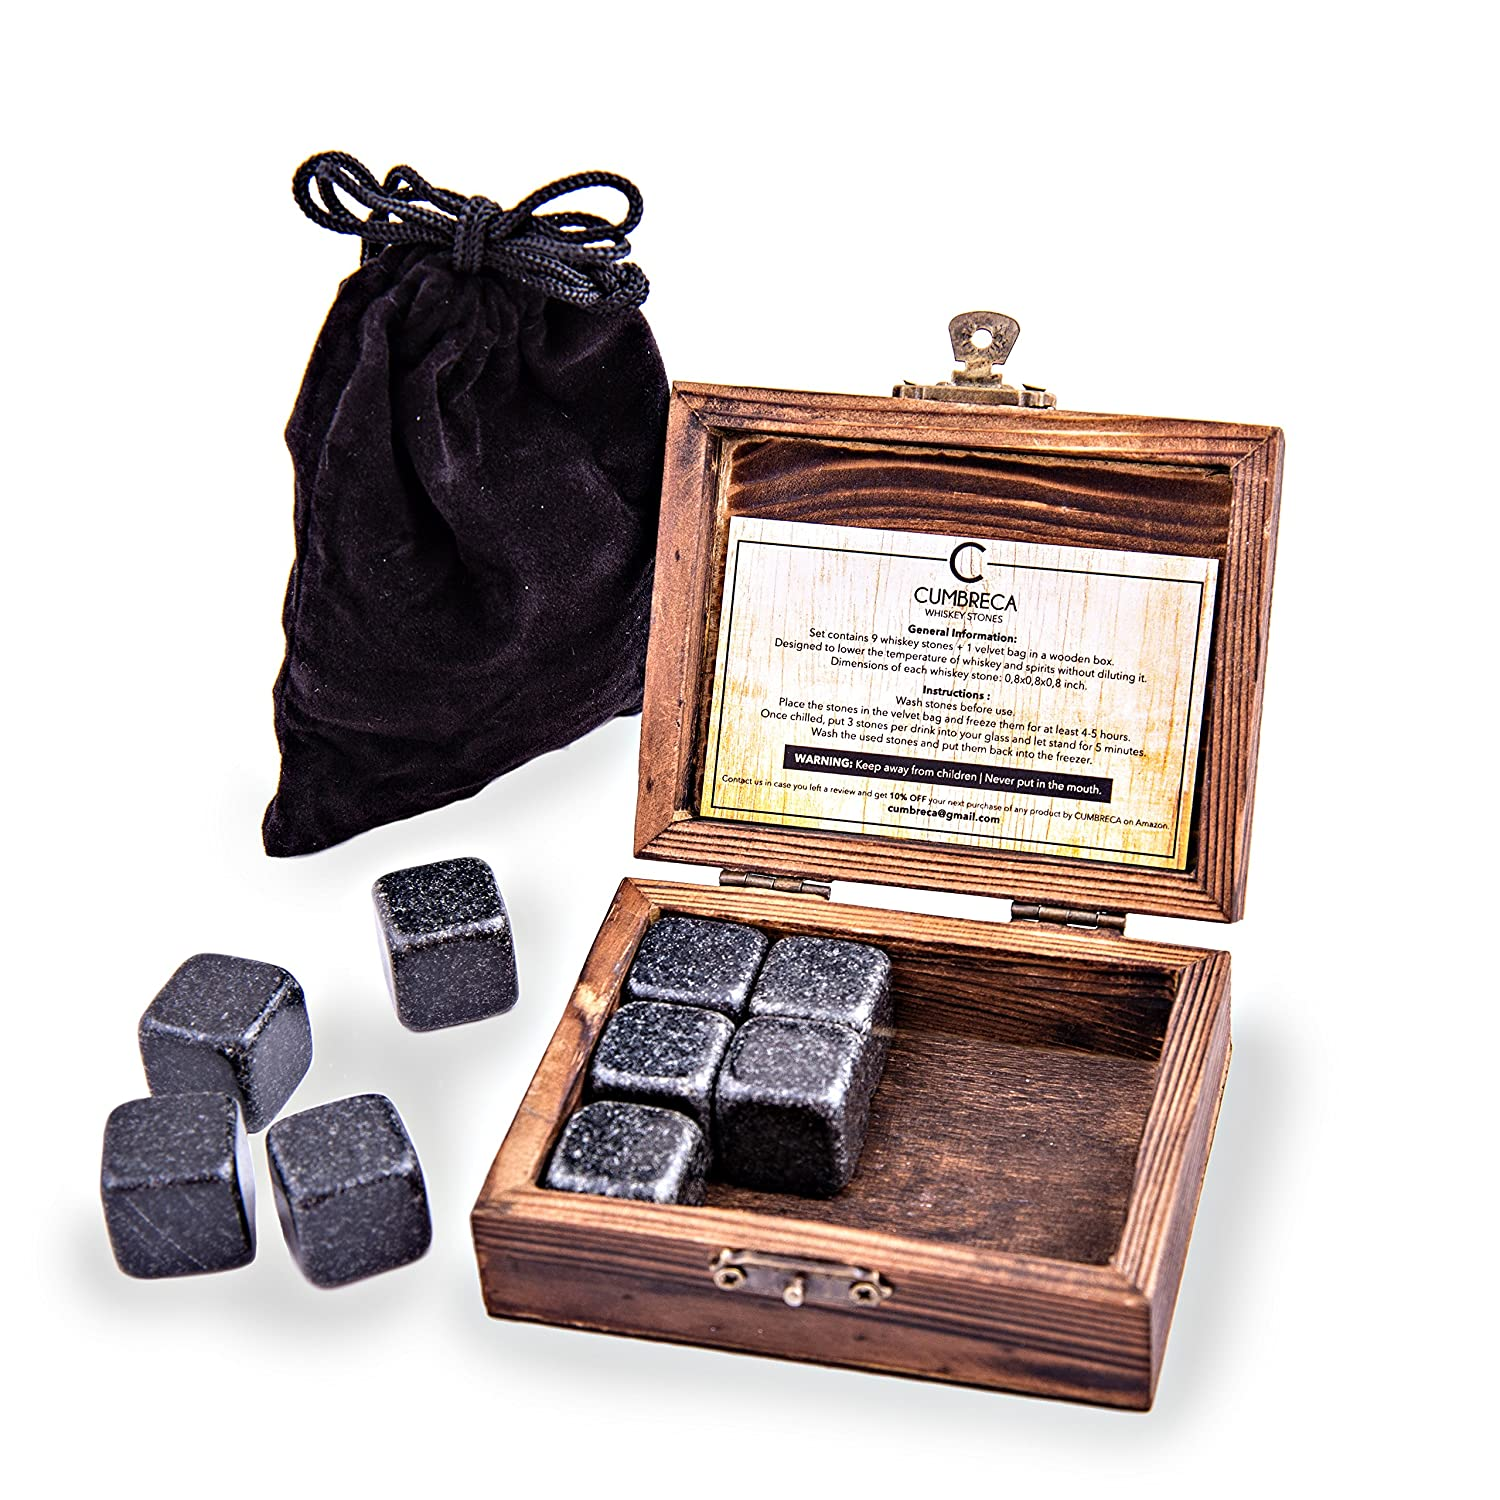 Cumbreca Whiskey Stones Granite Drinking Rocks for Chilling your Whiskey, Wine and other Beverages, Set of 9 with the Wooden Box + Velvet Pouch